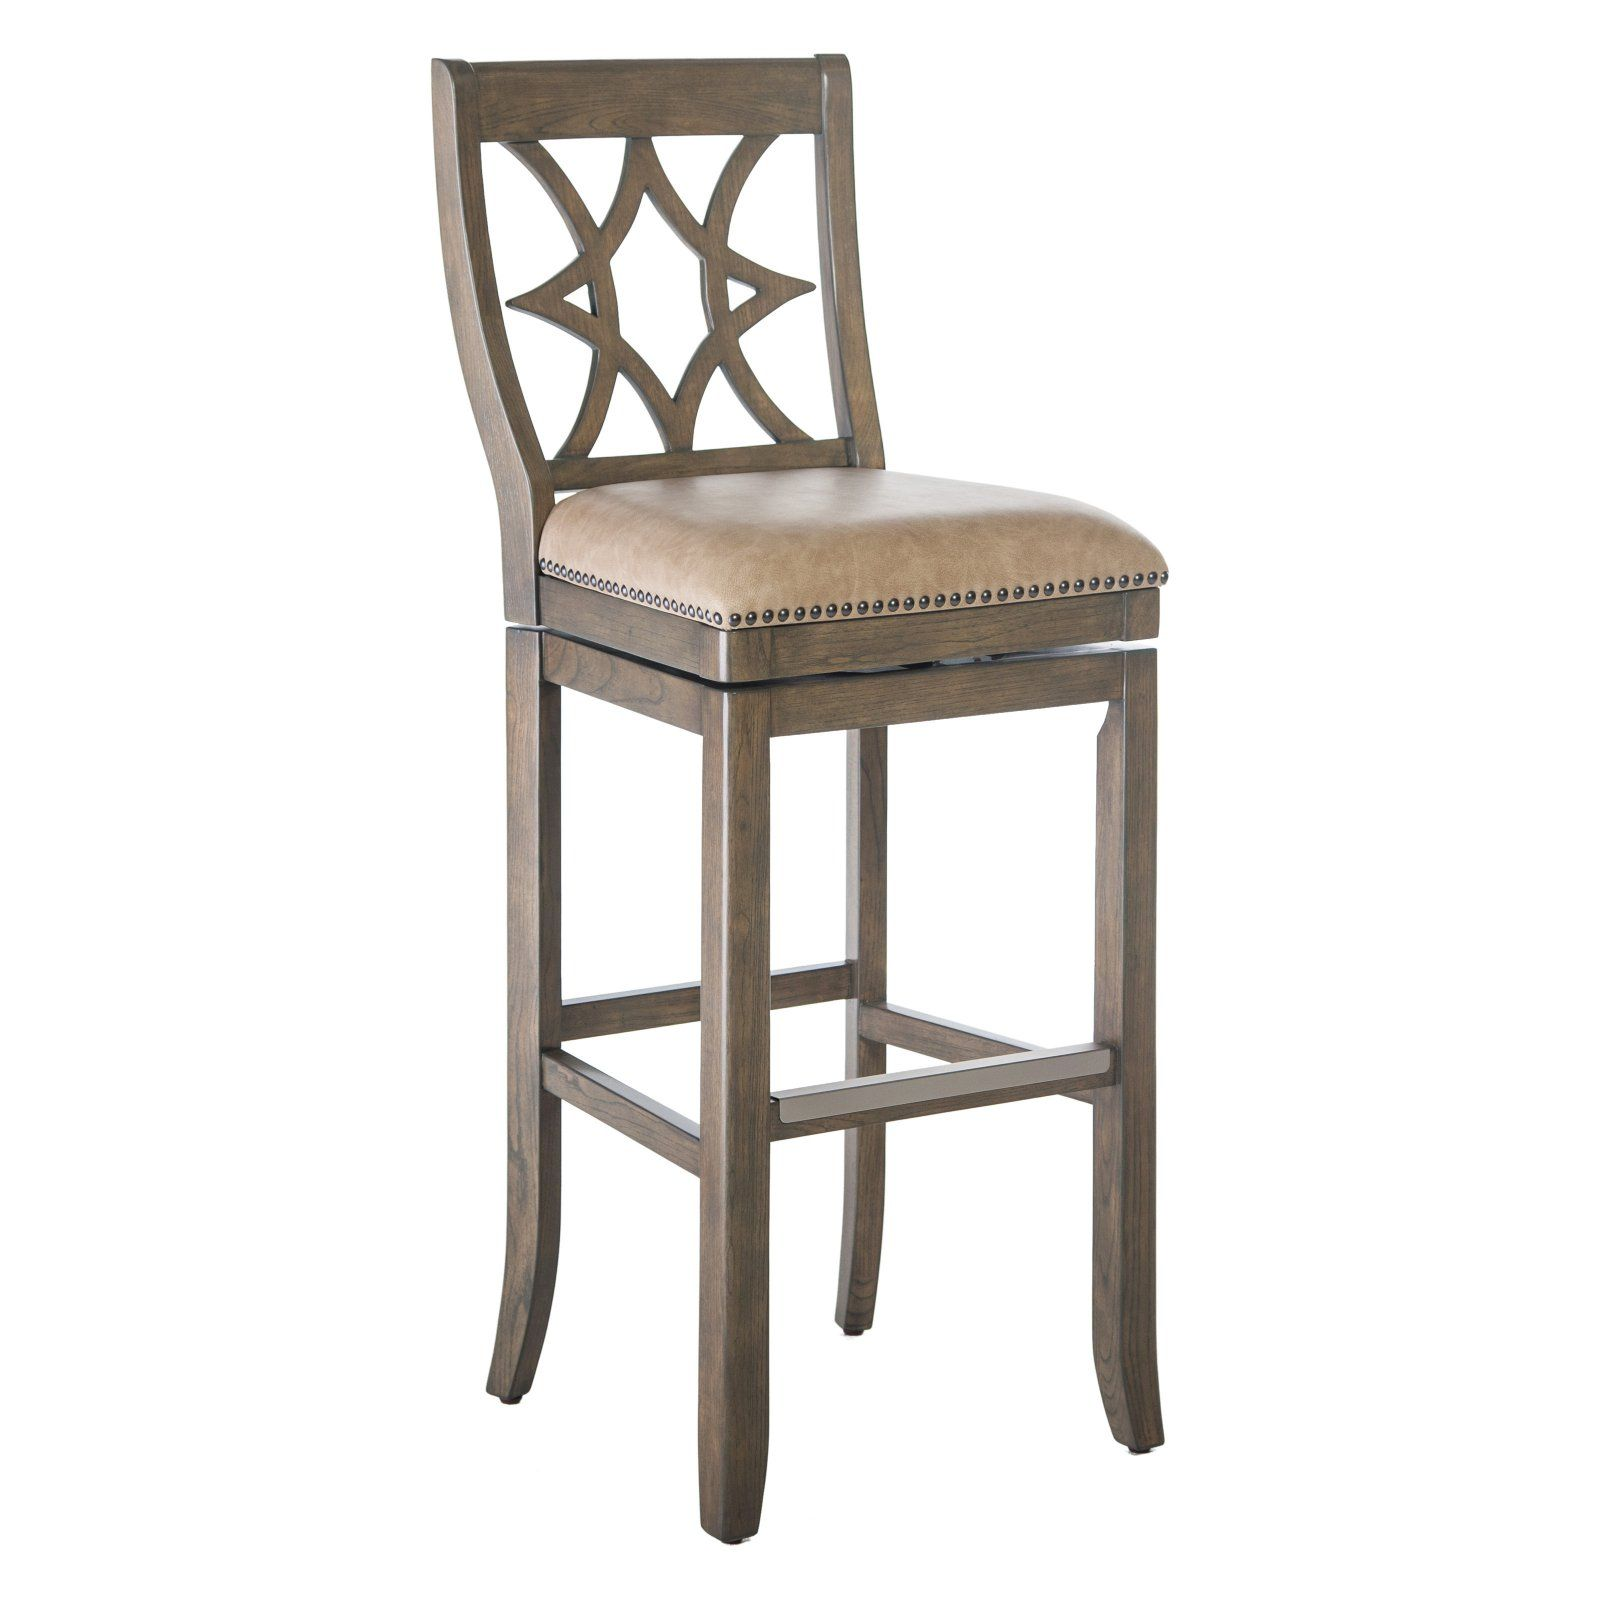 Belham Living Oliver Square Seat Swivel Extra Tall Bar Stool Taupe